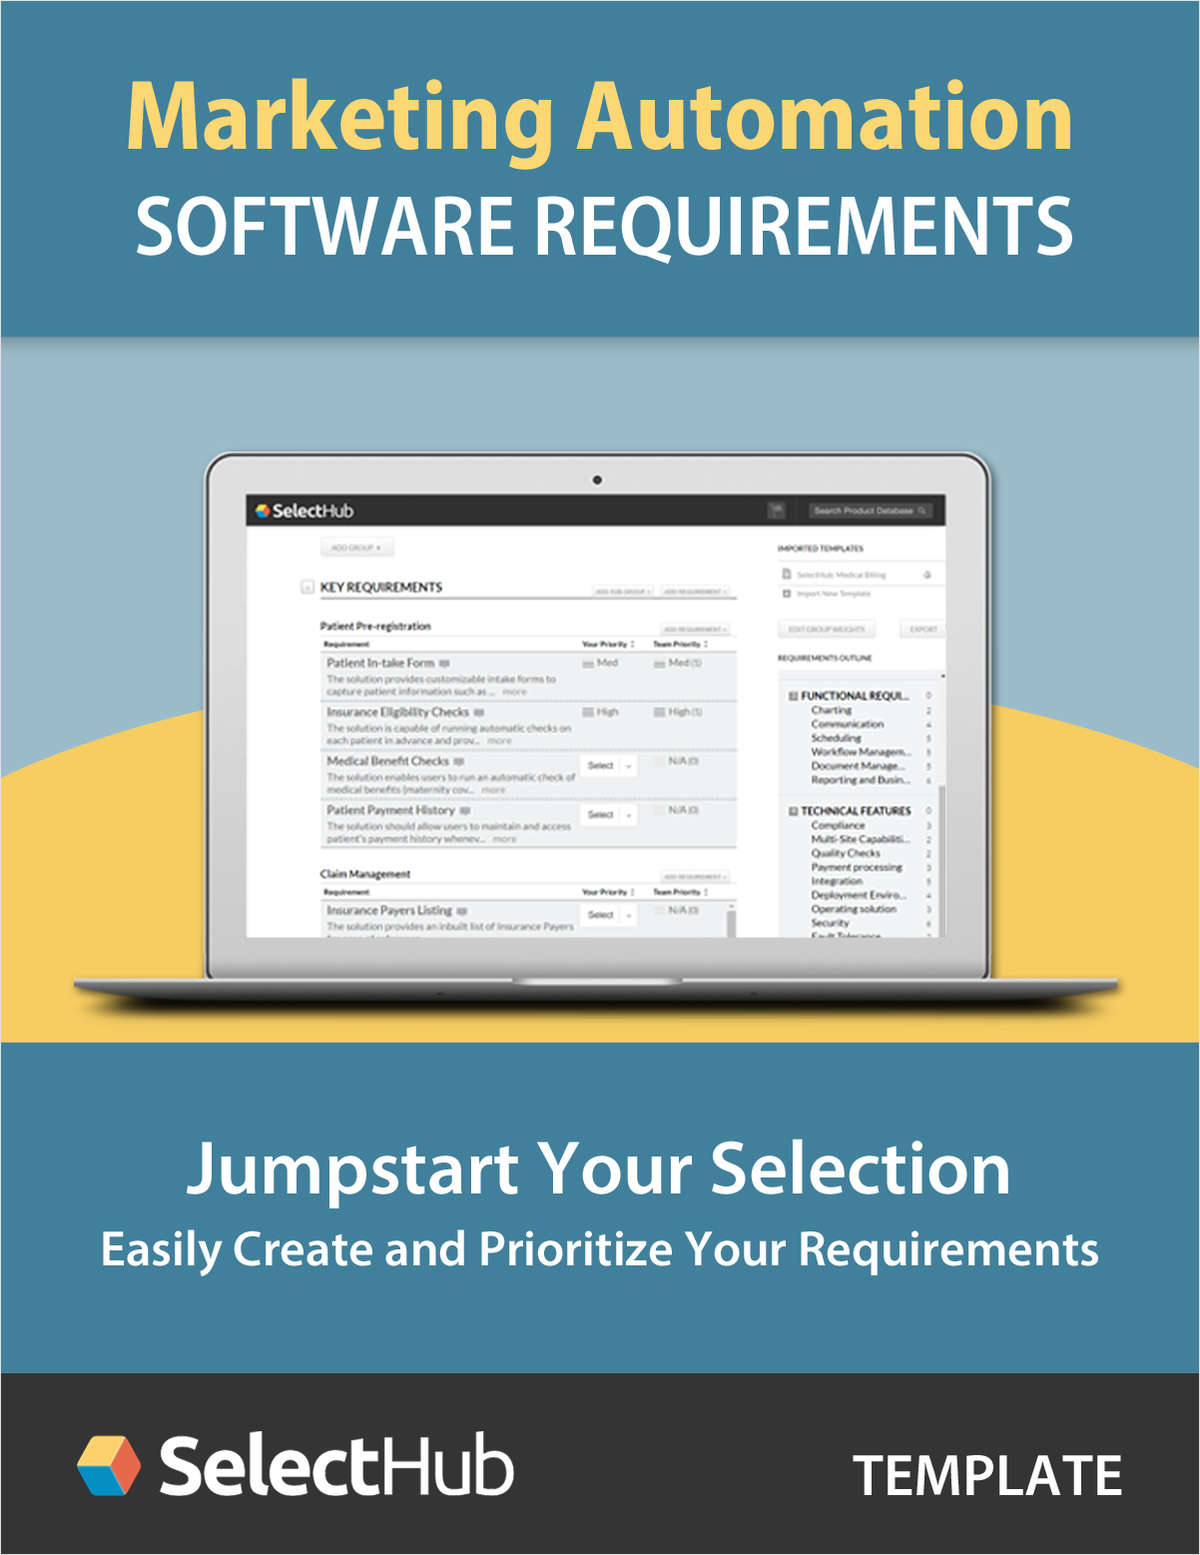 Marketing Automation Software Requirements Gathering Template